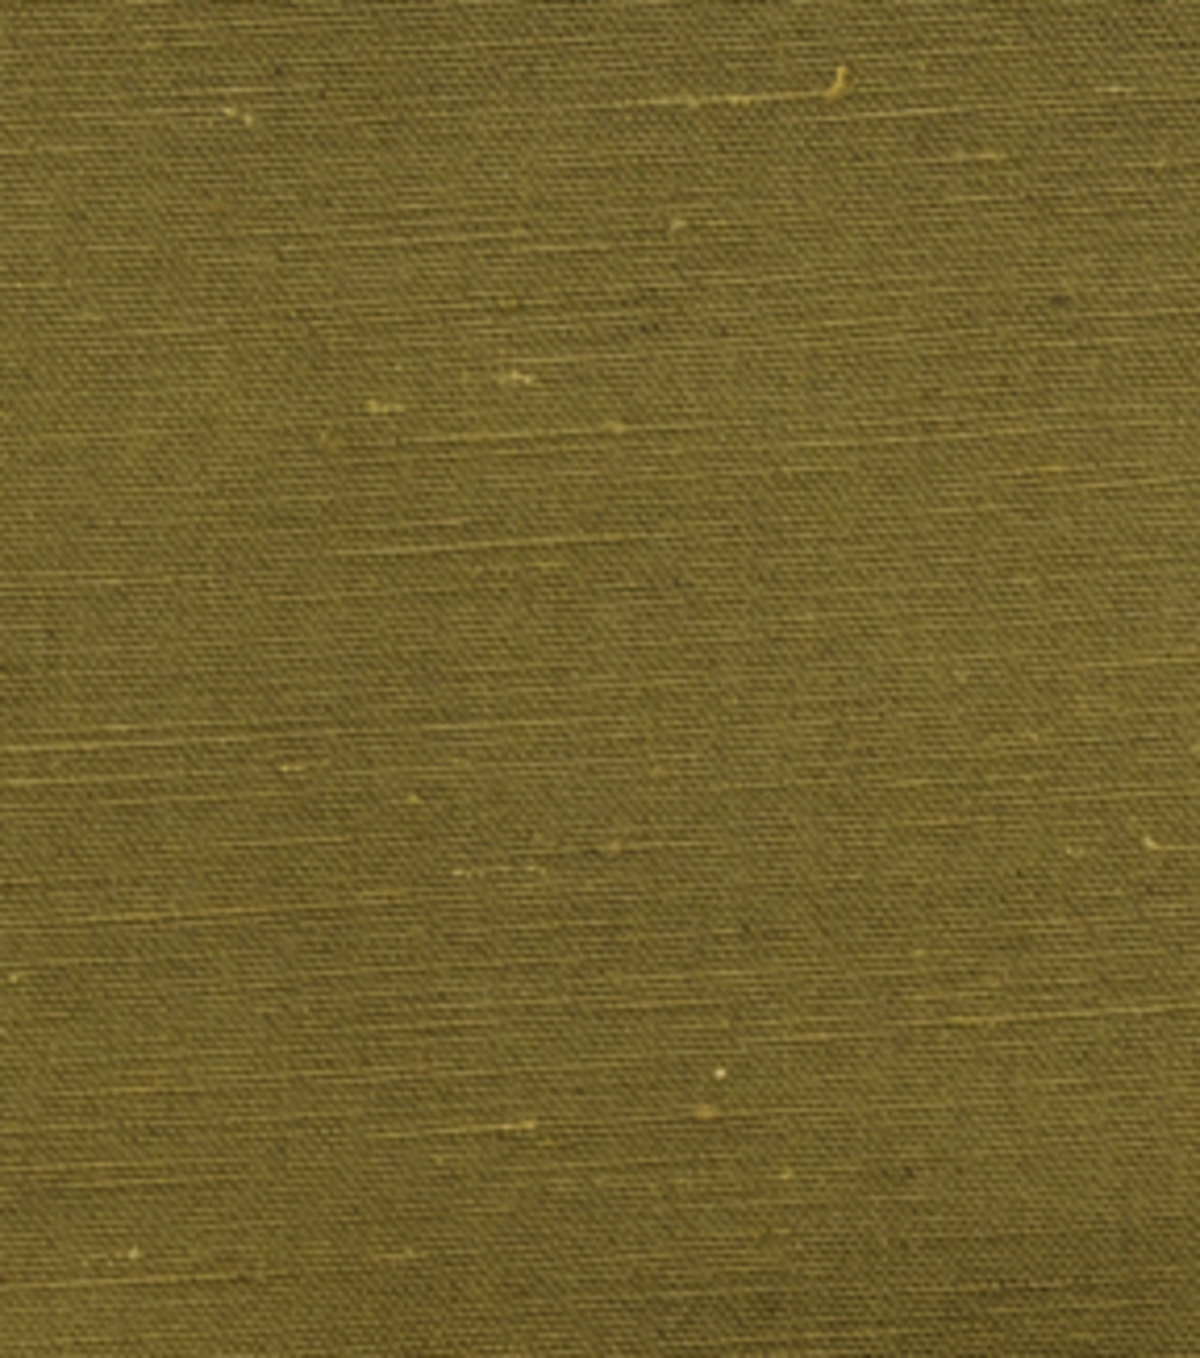 Home Decor 8\u0022x8\u0022 Fabric Swatch-Signature Series Sonoma Linen-Cotton Jungle